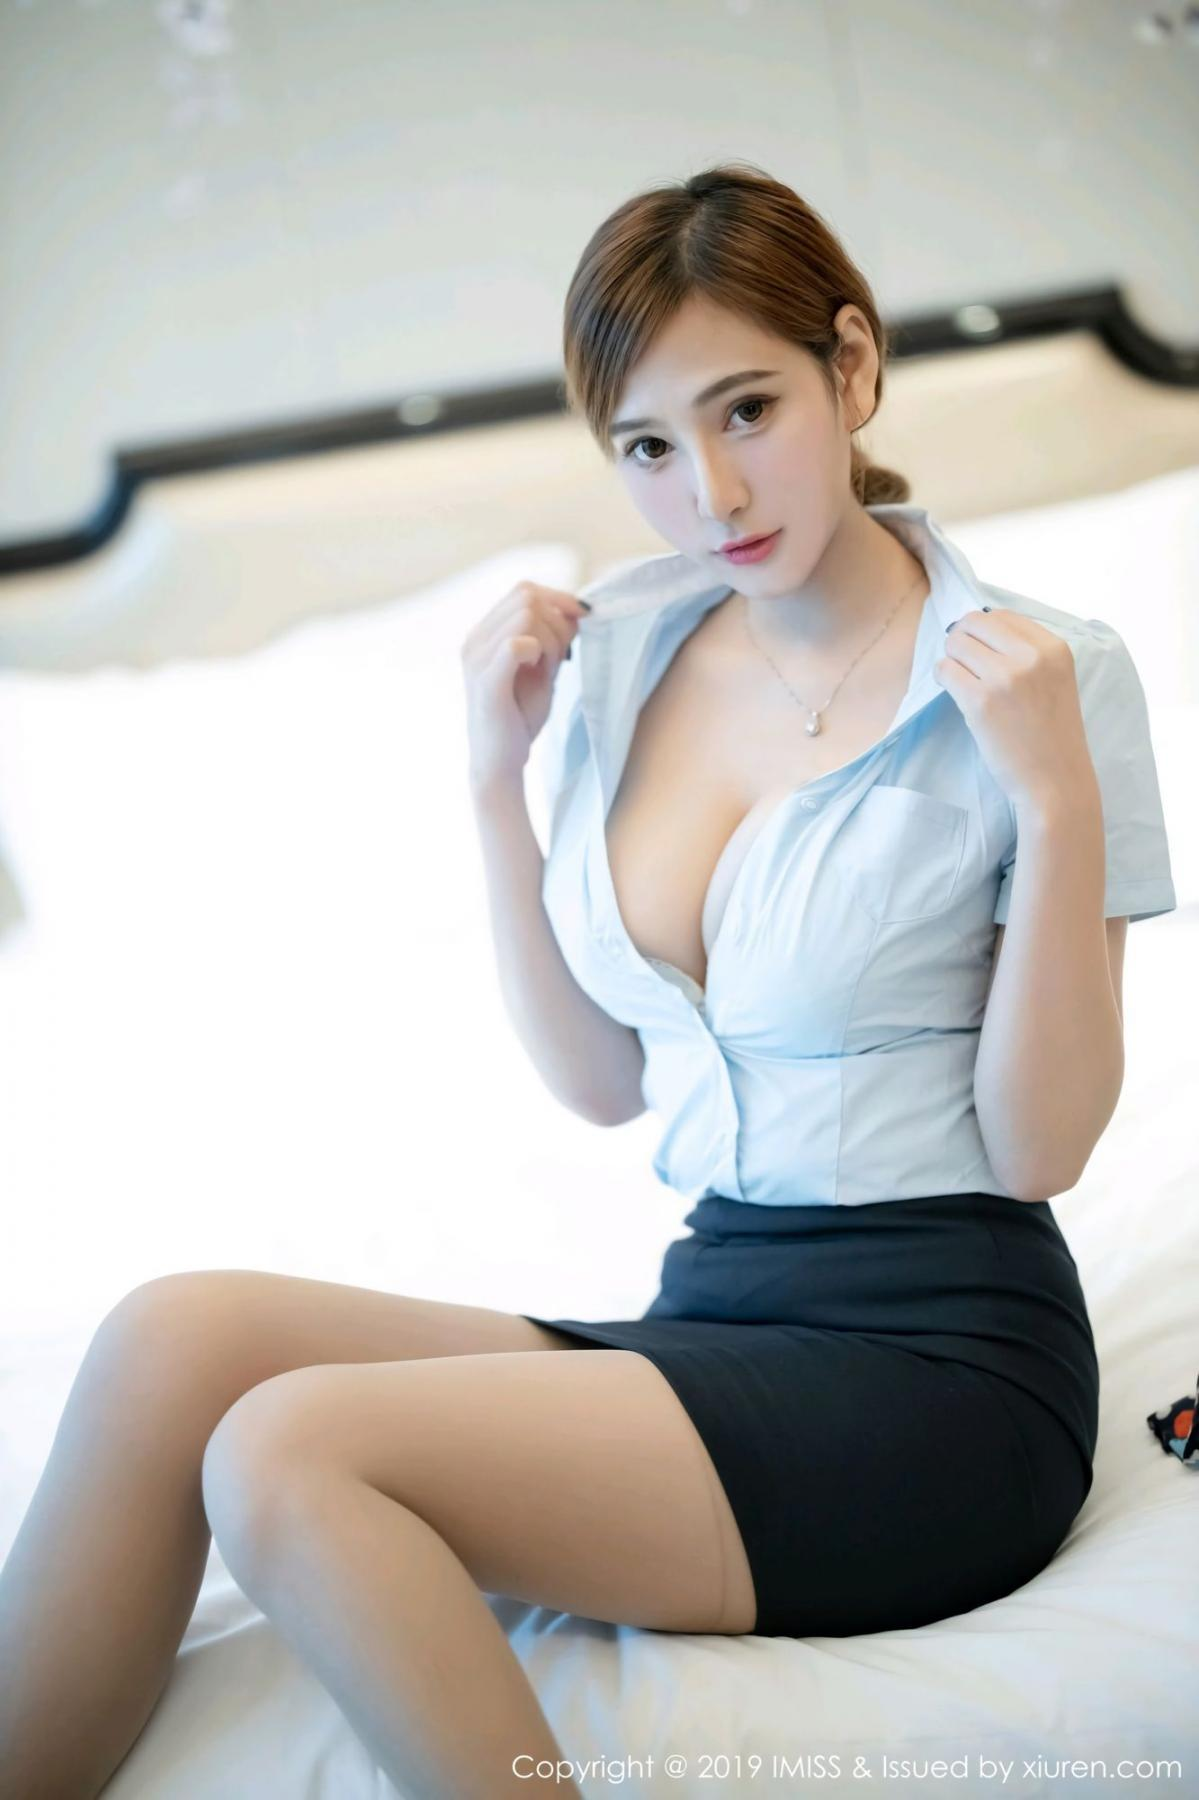 IMiss Vol. 408 Lavinia - Page 2 of 5 - Best Hottie